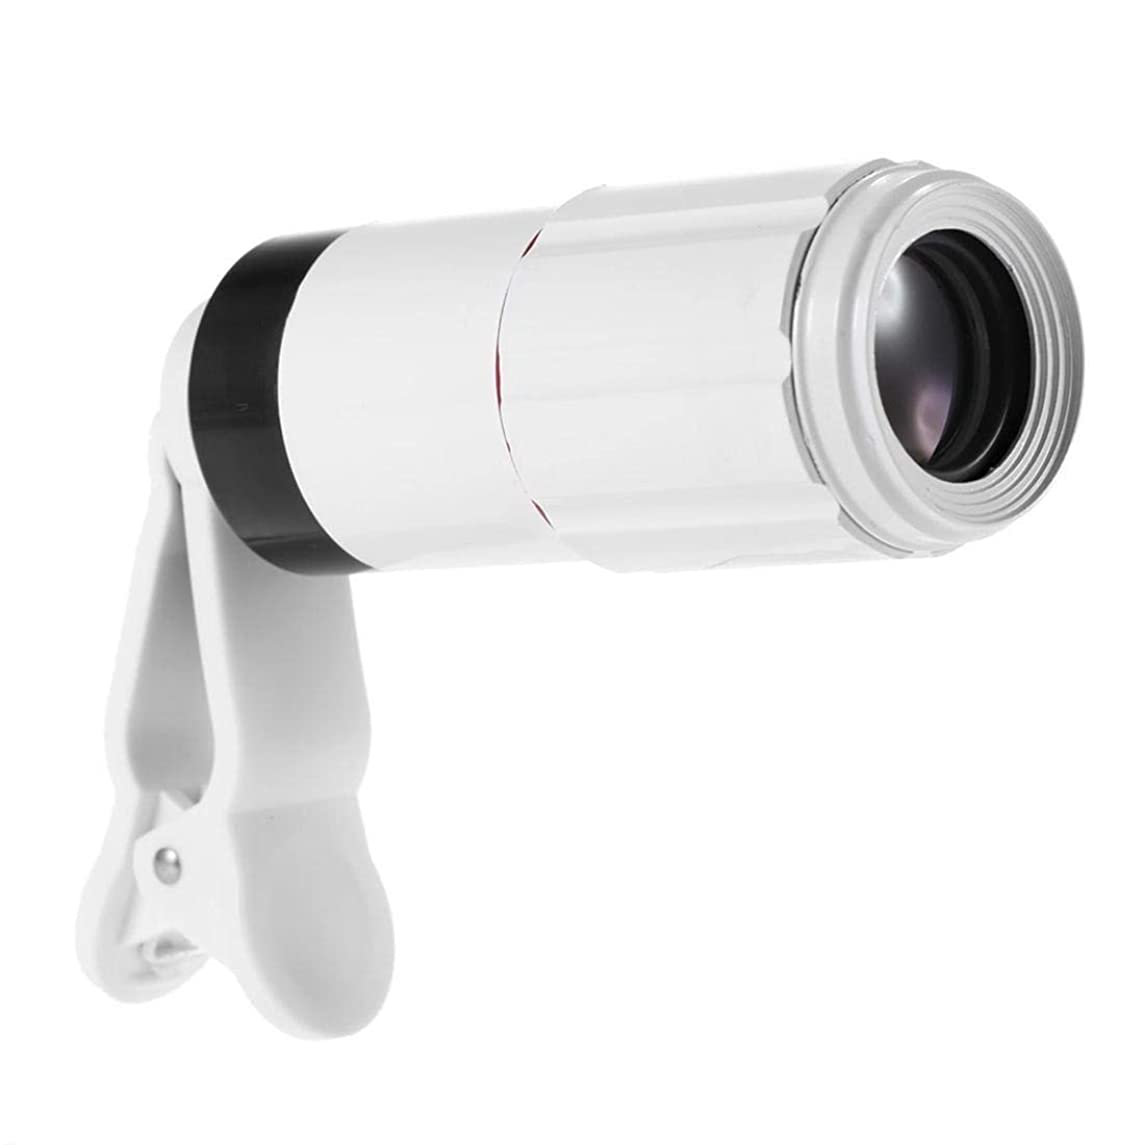 Lxn 8X Zoom Phone Telephoto Camera Lens with Clip - Black White